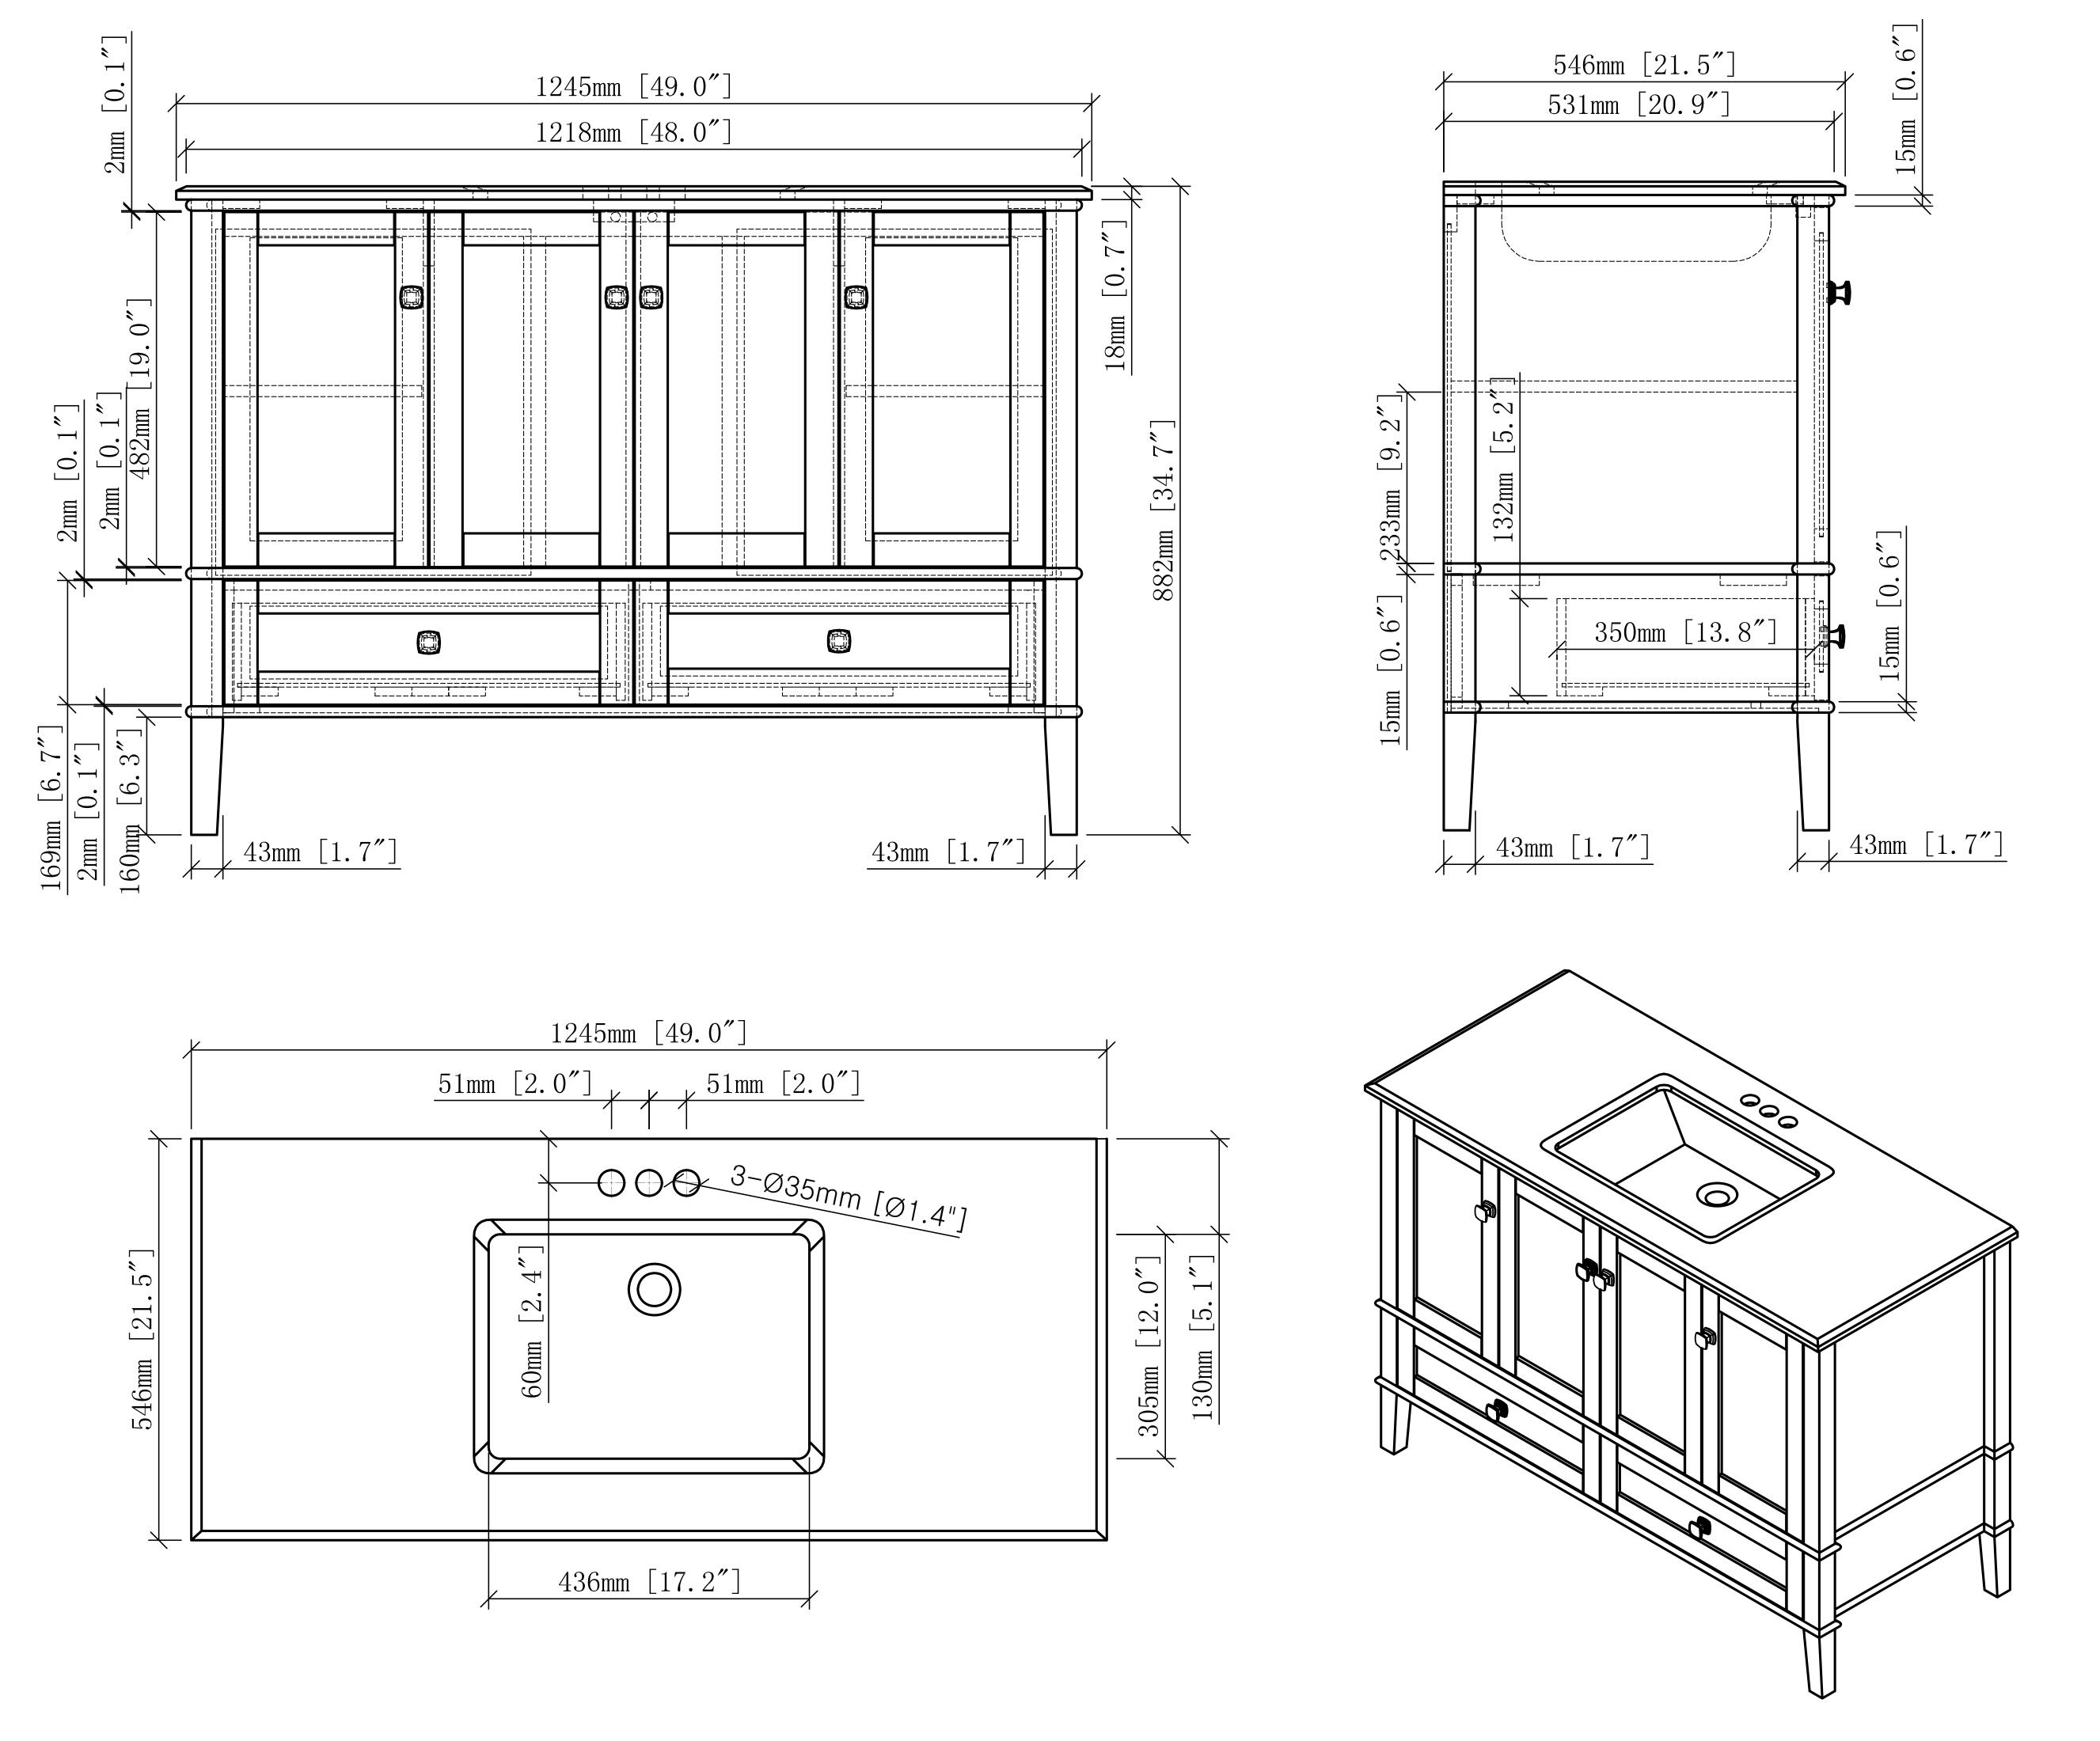 48 Inch White Bathroom Vanity. Image Result For 48 Inch White Bathroom Vanity